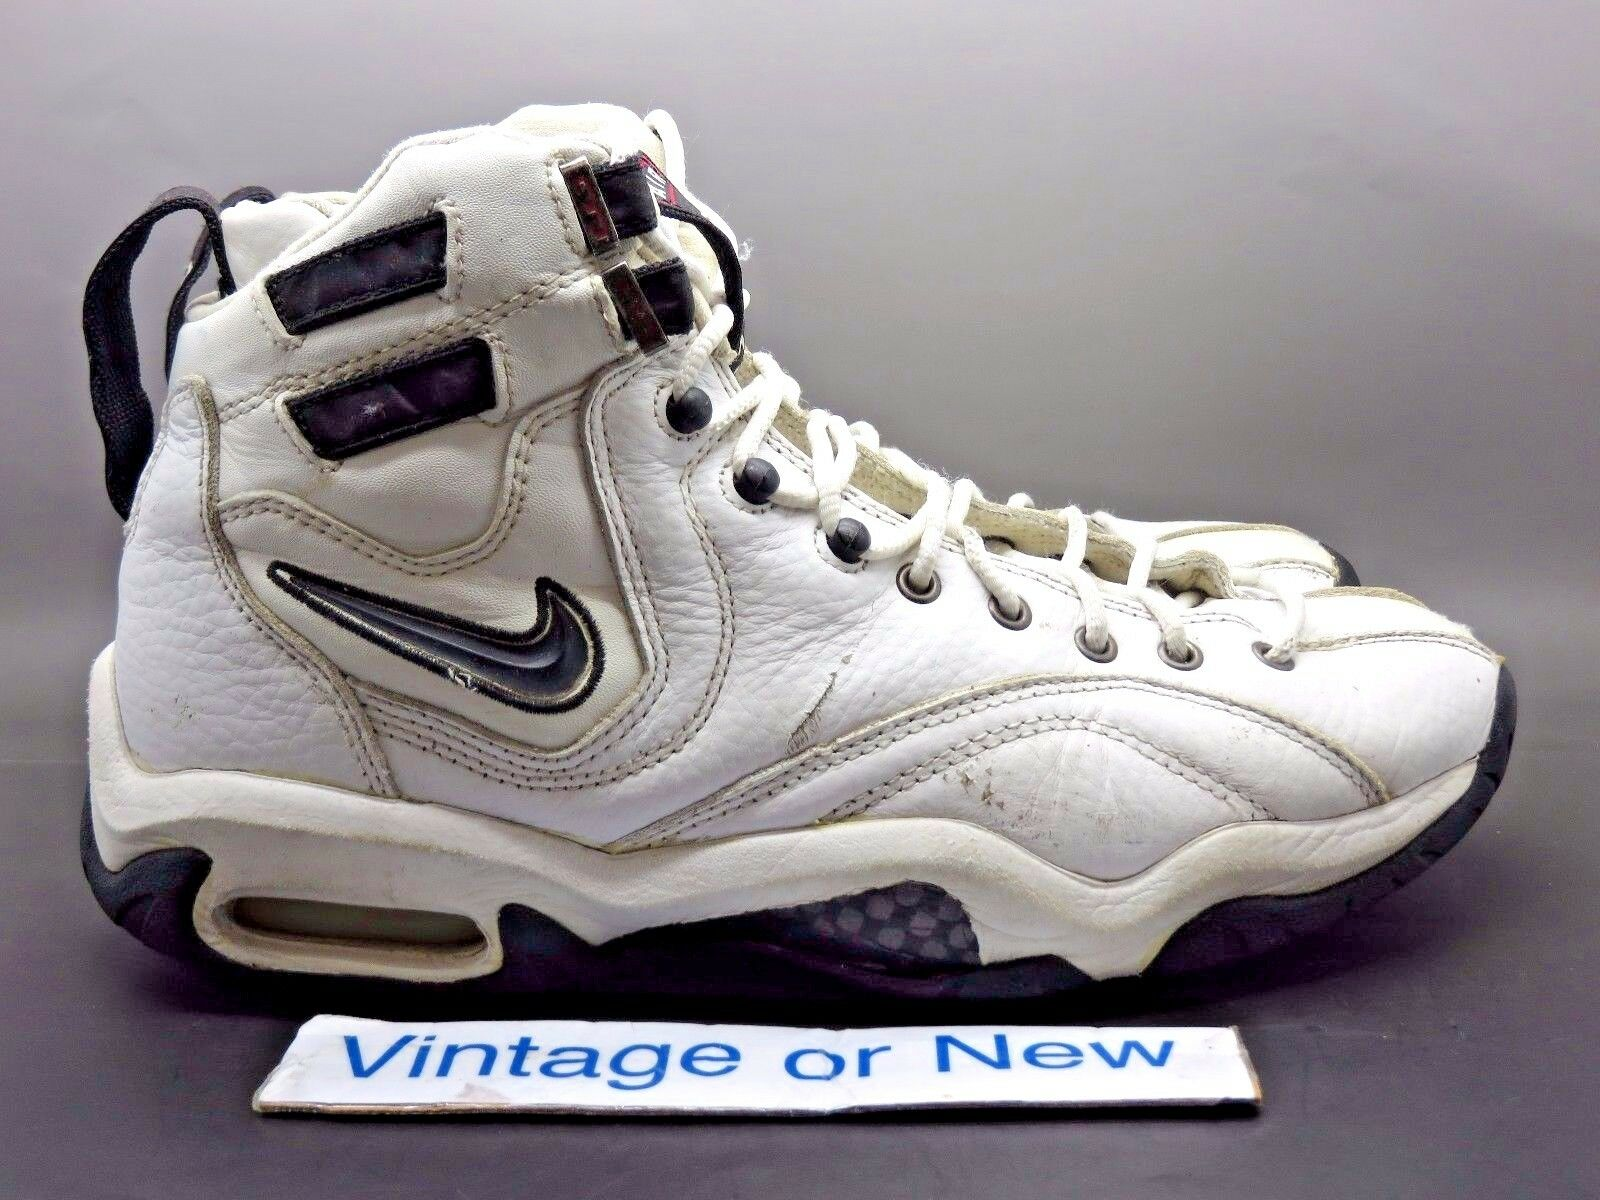 VTG Nike Air Alonzo White Black Varsity Red Mourning 1997 sz 10